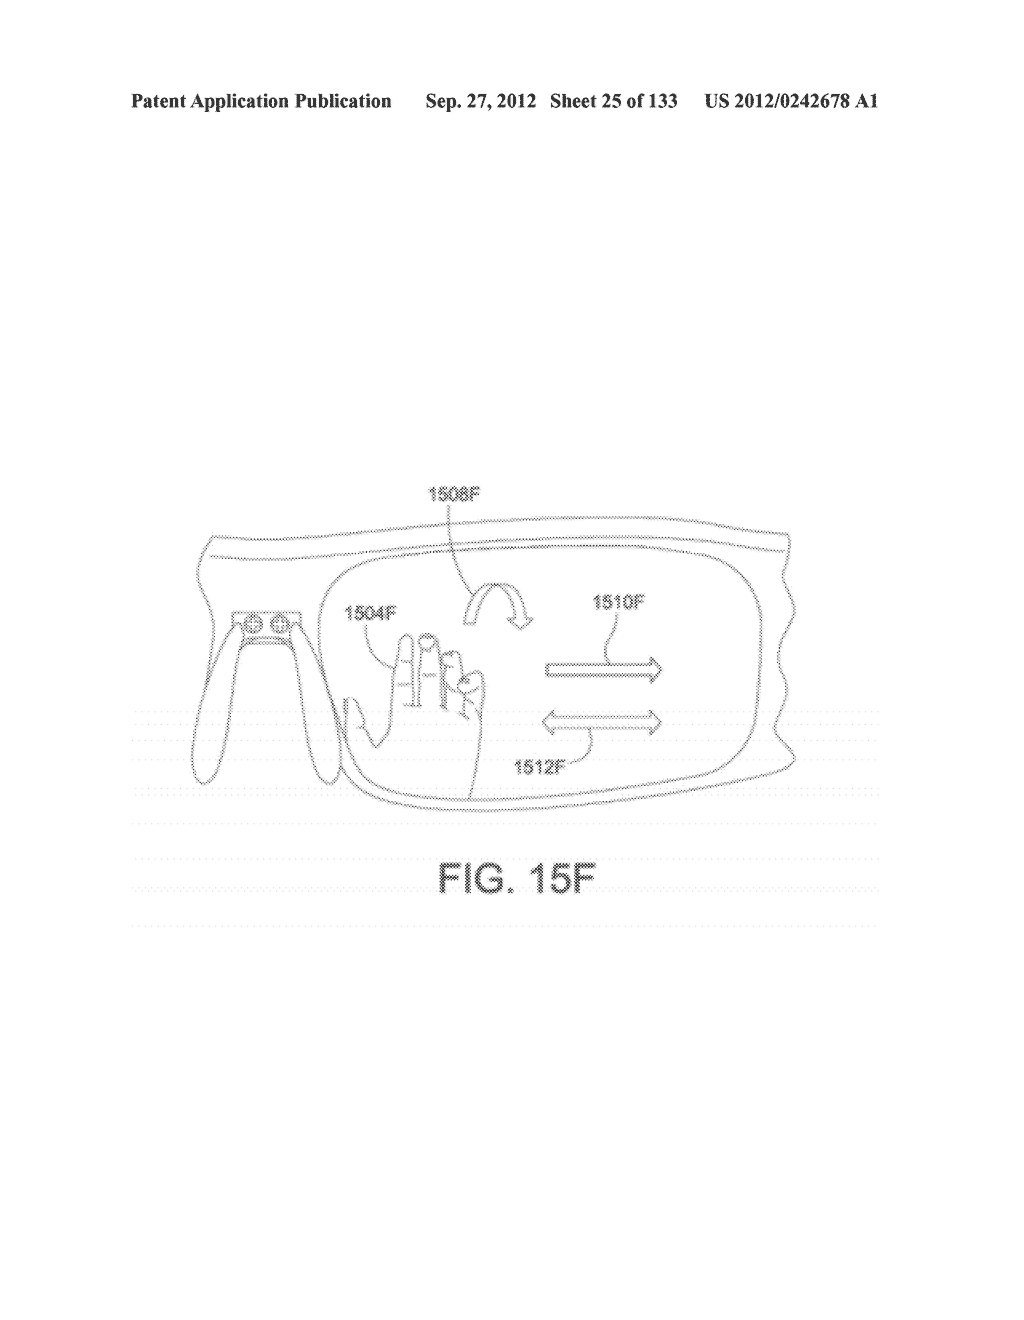 SEE-THROUGH NEAR-EYE DISPLAY GLASSES INCLUDING AN AUTO-BRIGHTNESS CONTROL     FOR THE DISPLAY BRIGHTNESS BASED ON THE BRIGHTNESS IN THE ENVIRONMENT - diagram, schematic, and image 26